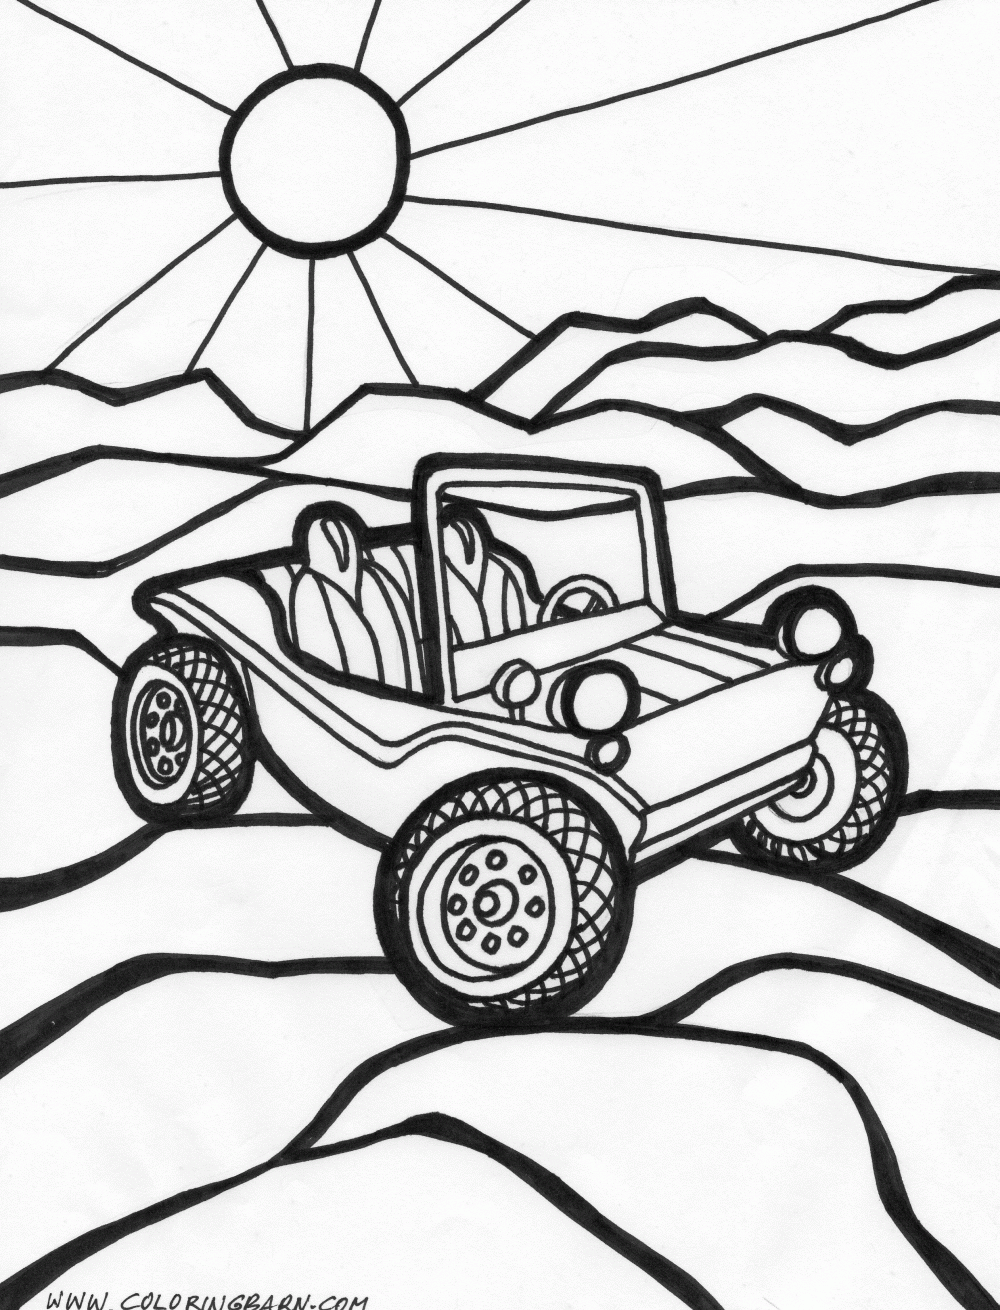 Dune Buggy Coloring Page : buggy, coloring, Cars-5.gif, 1,000×1,310, Pixels, Coloring, Pages,, Summer, Buggy